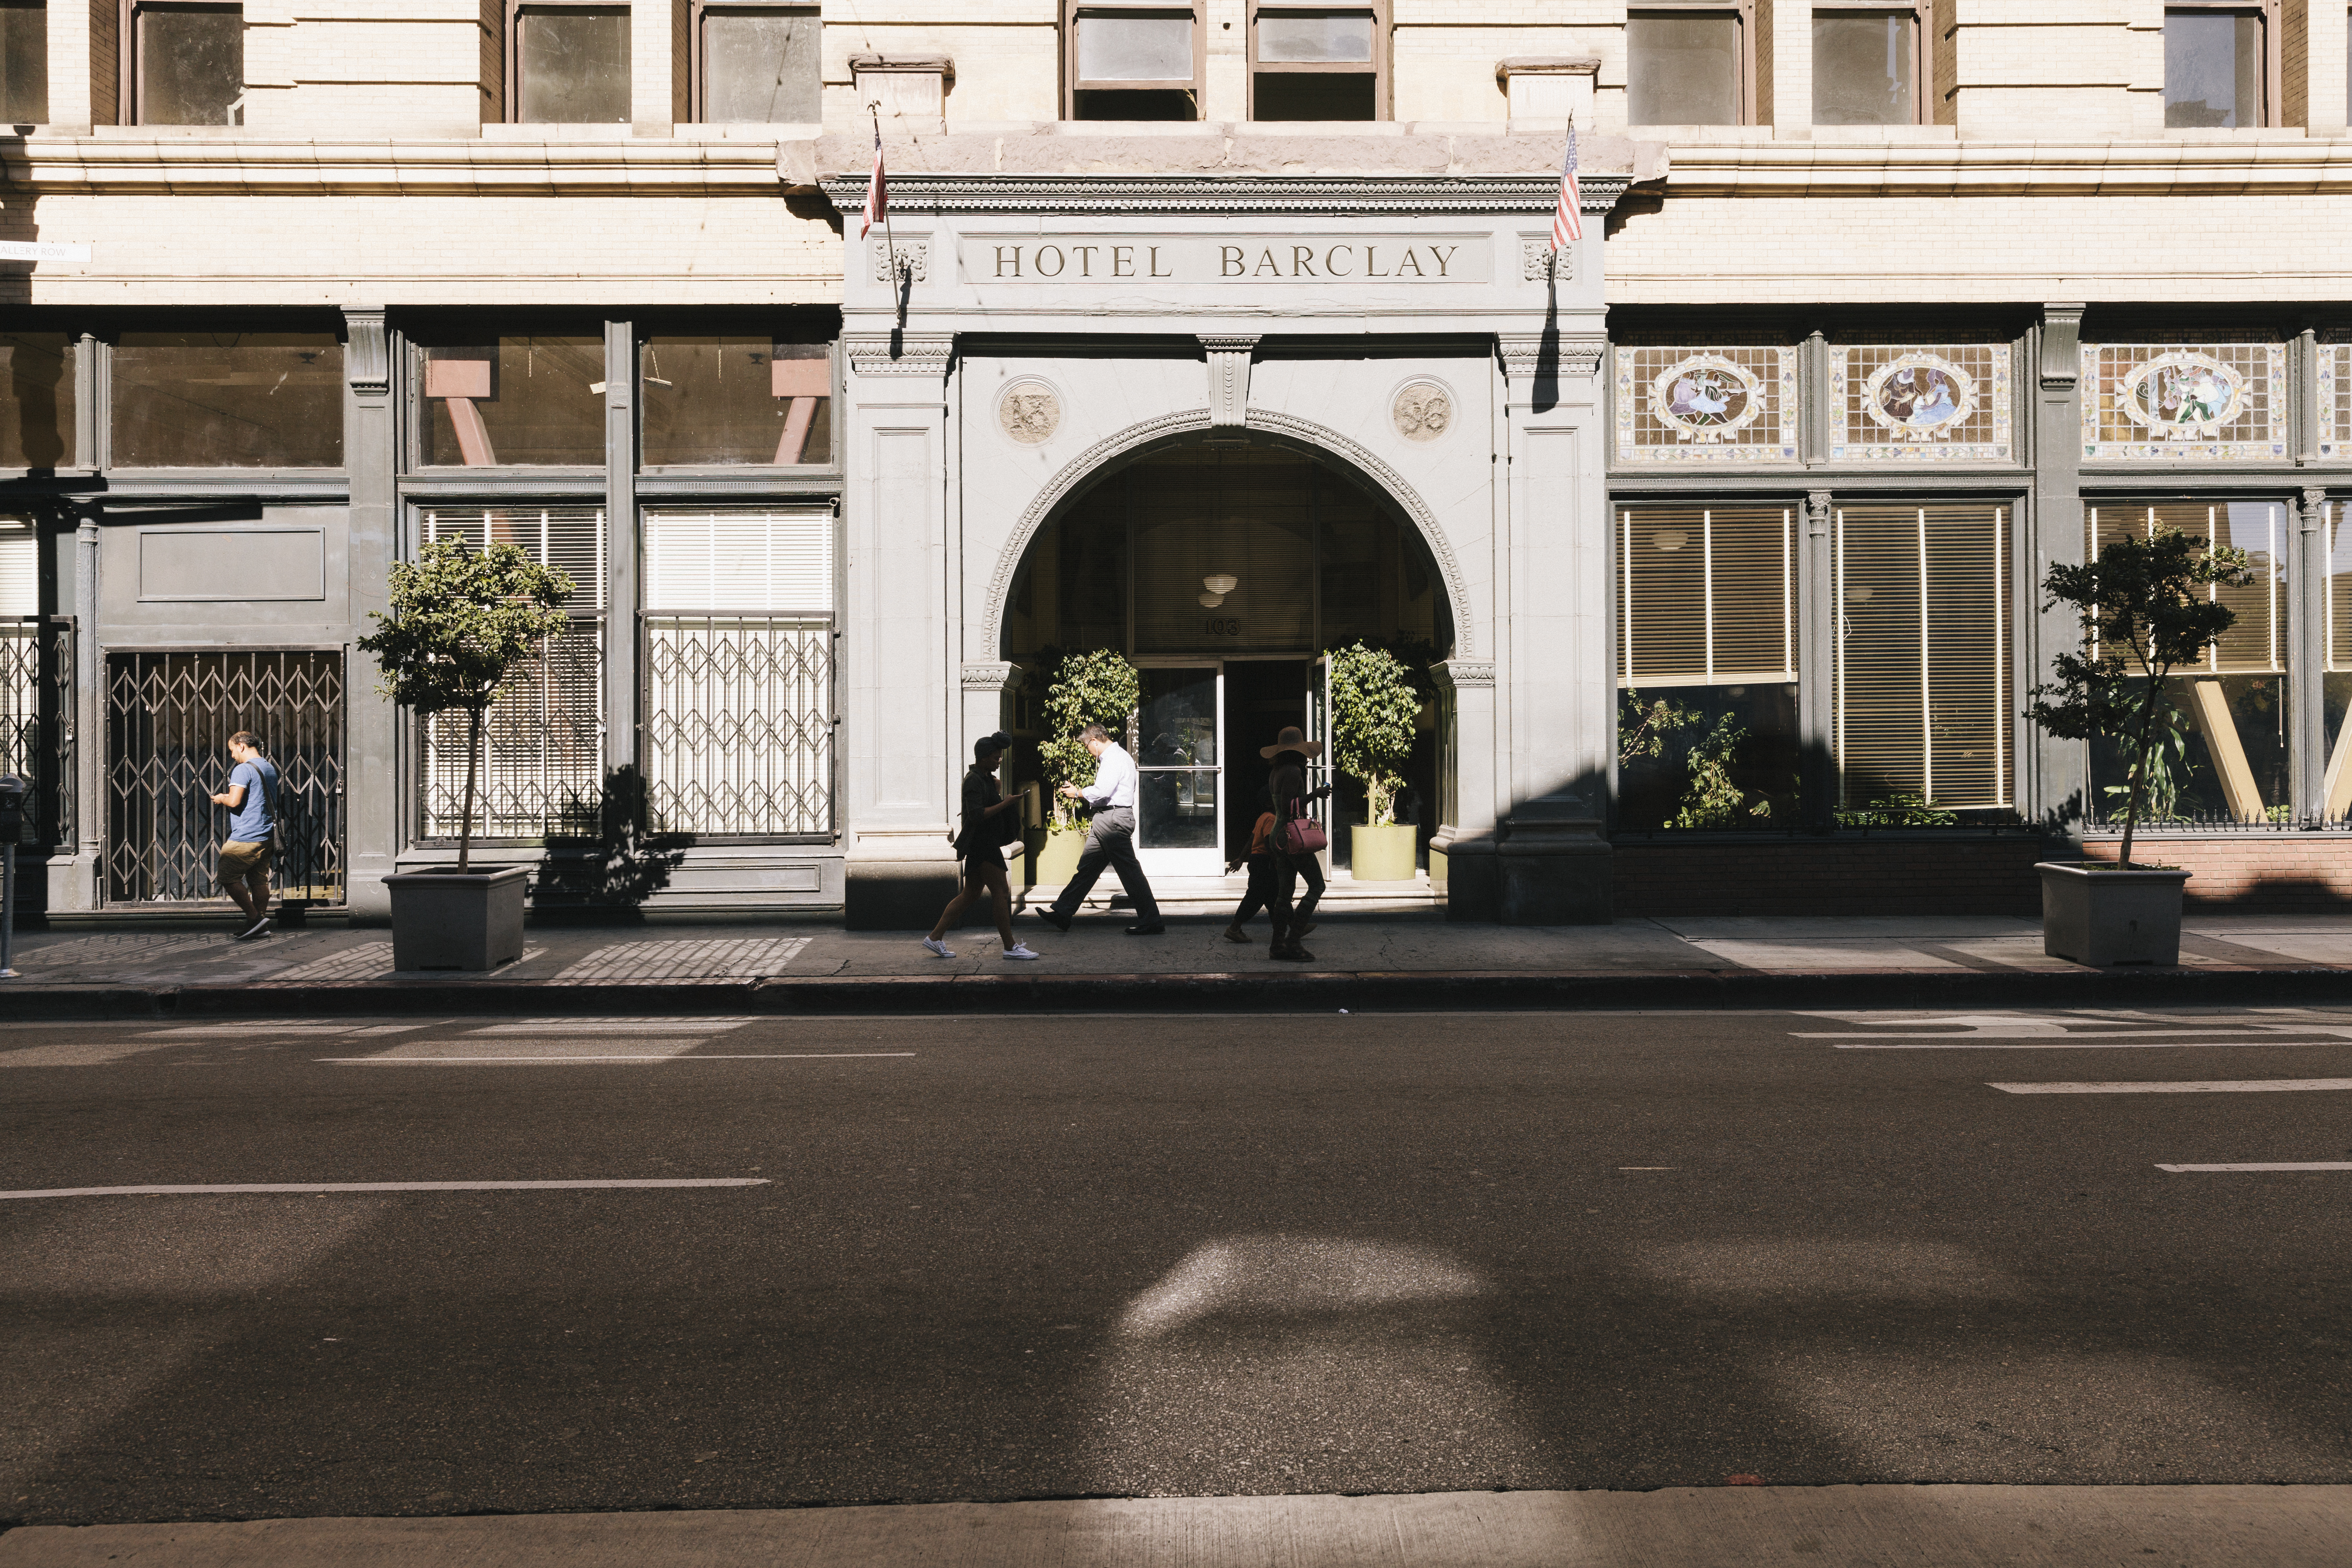 A photo of people on the sidewalk walking by the lettered arch over the entrance to the hotel.